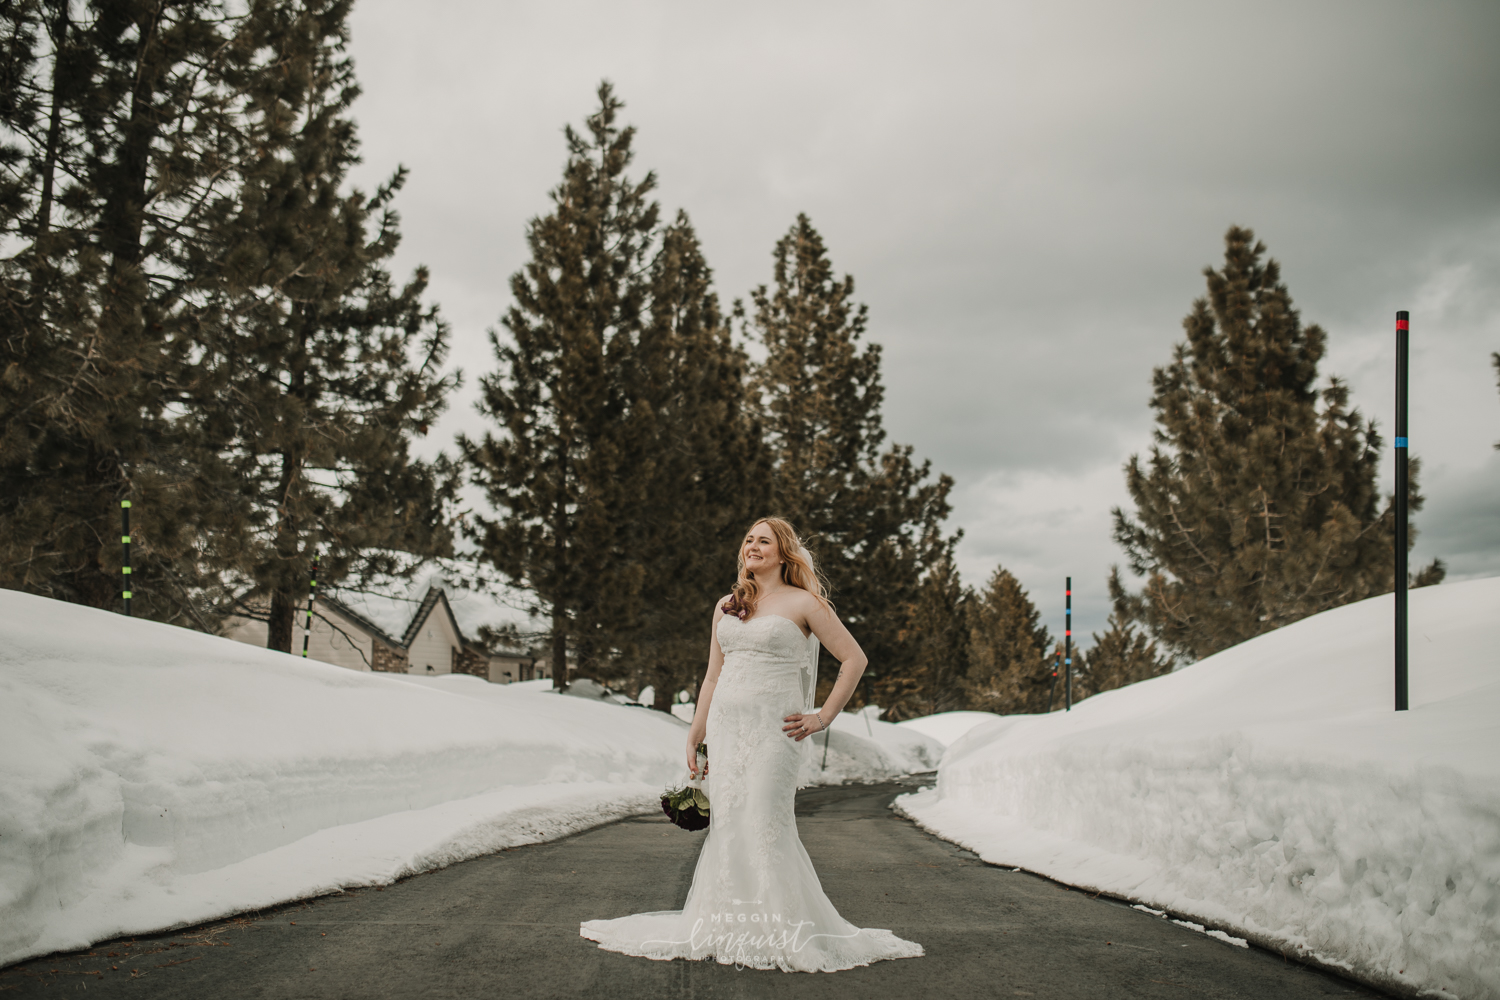 music-themed-winter-wedding-tannenbaum-event-center-reno-lake-tahoe-wedding-photographer-44.jpg